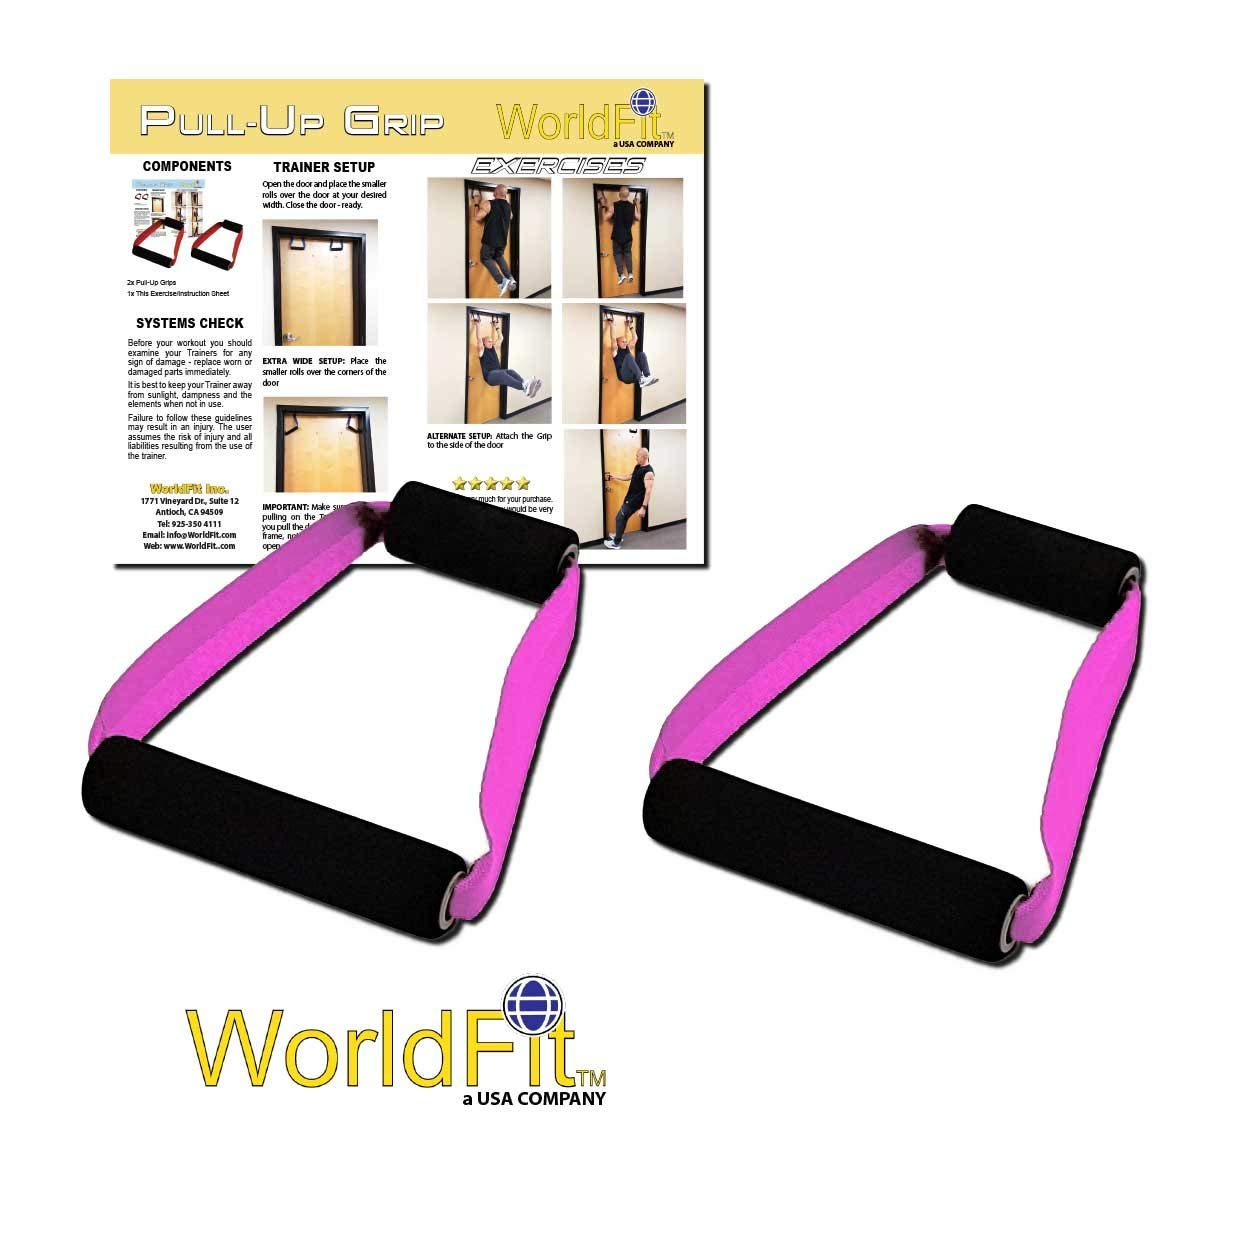 6c75c4a77b5 Get Quotations · WorldFit Pull-Up Grips for Door in Home